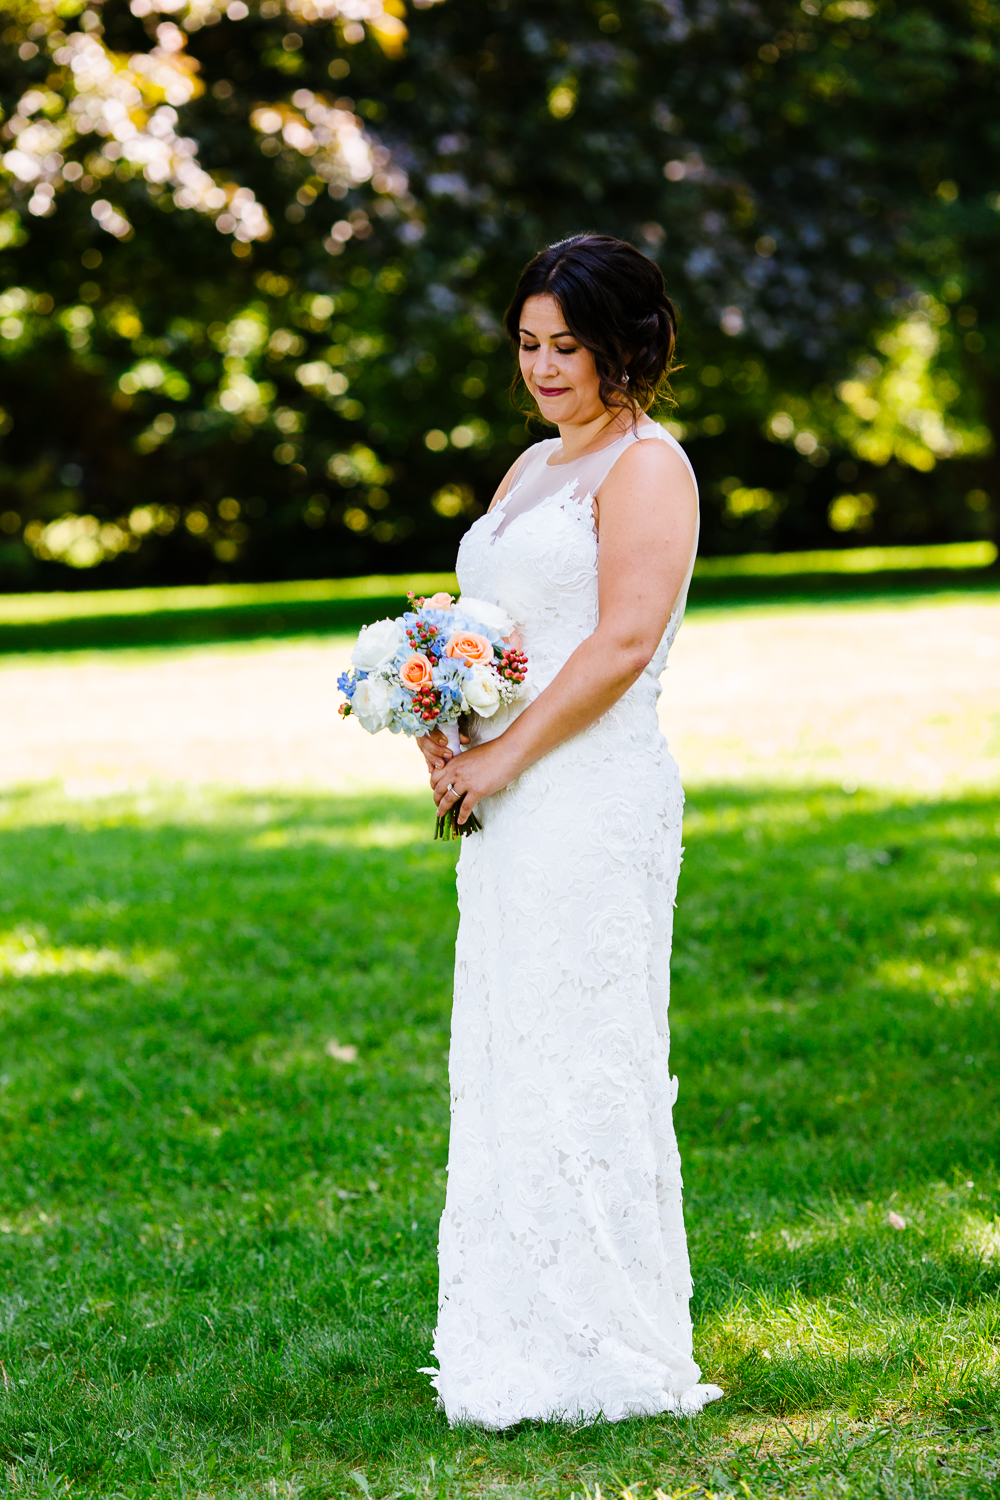 Full length portrait of the bride looking down at her flowers.